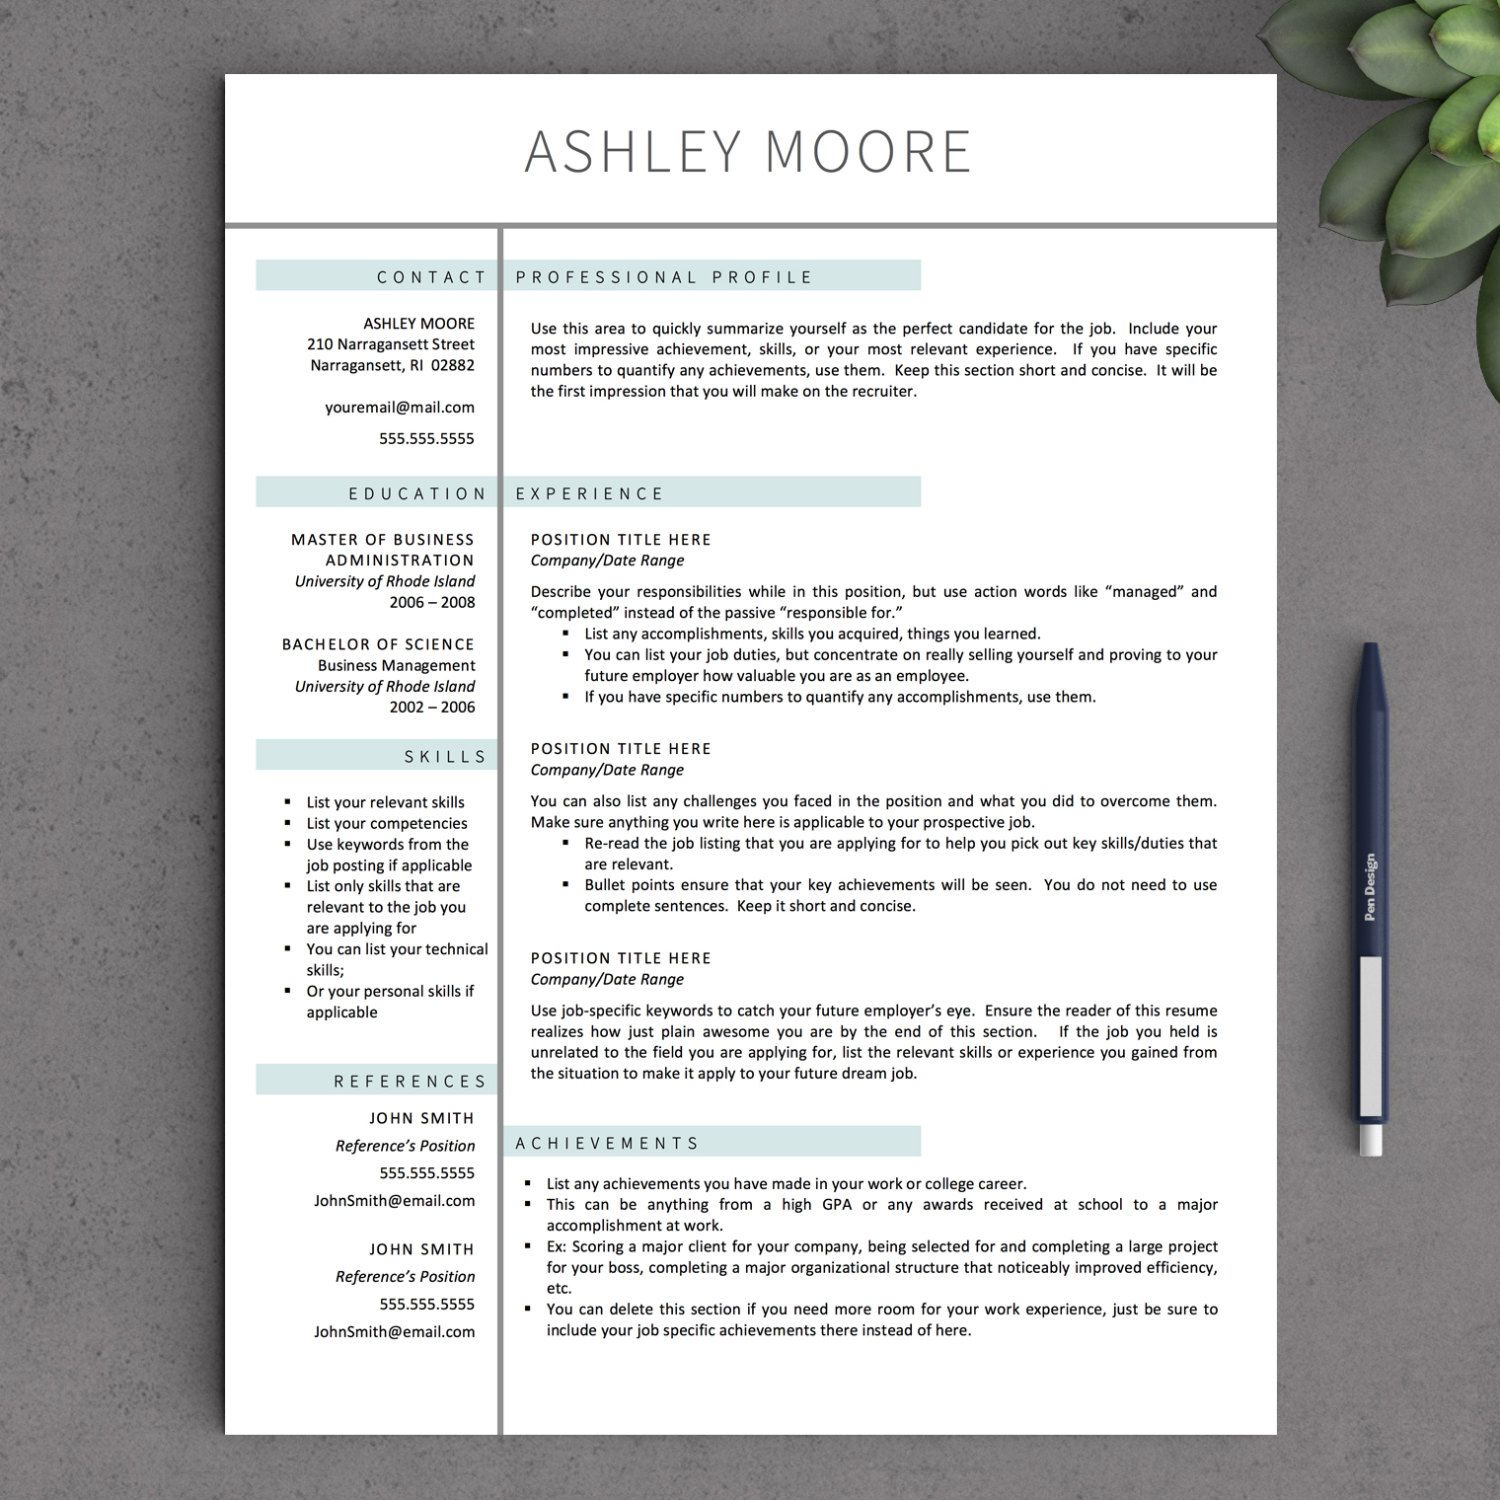 apple pages resume template download apple pages resume template download apple - Free Creative Resume Templates For Mac